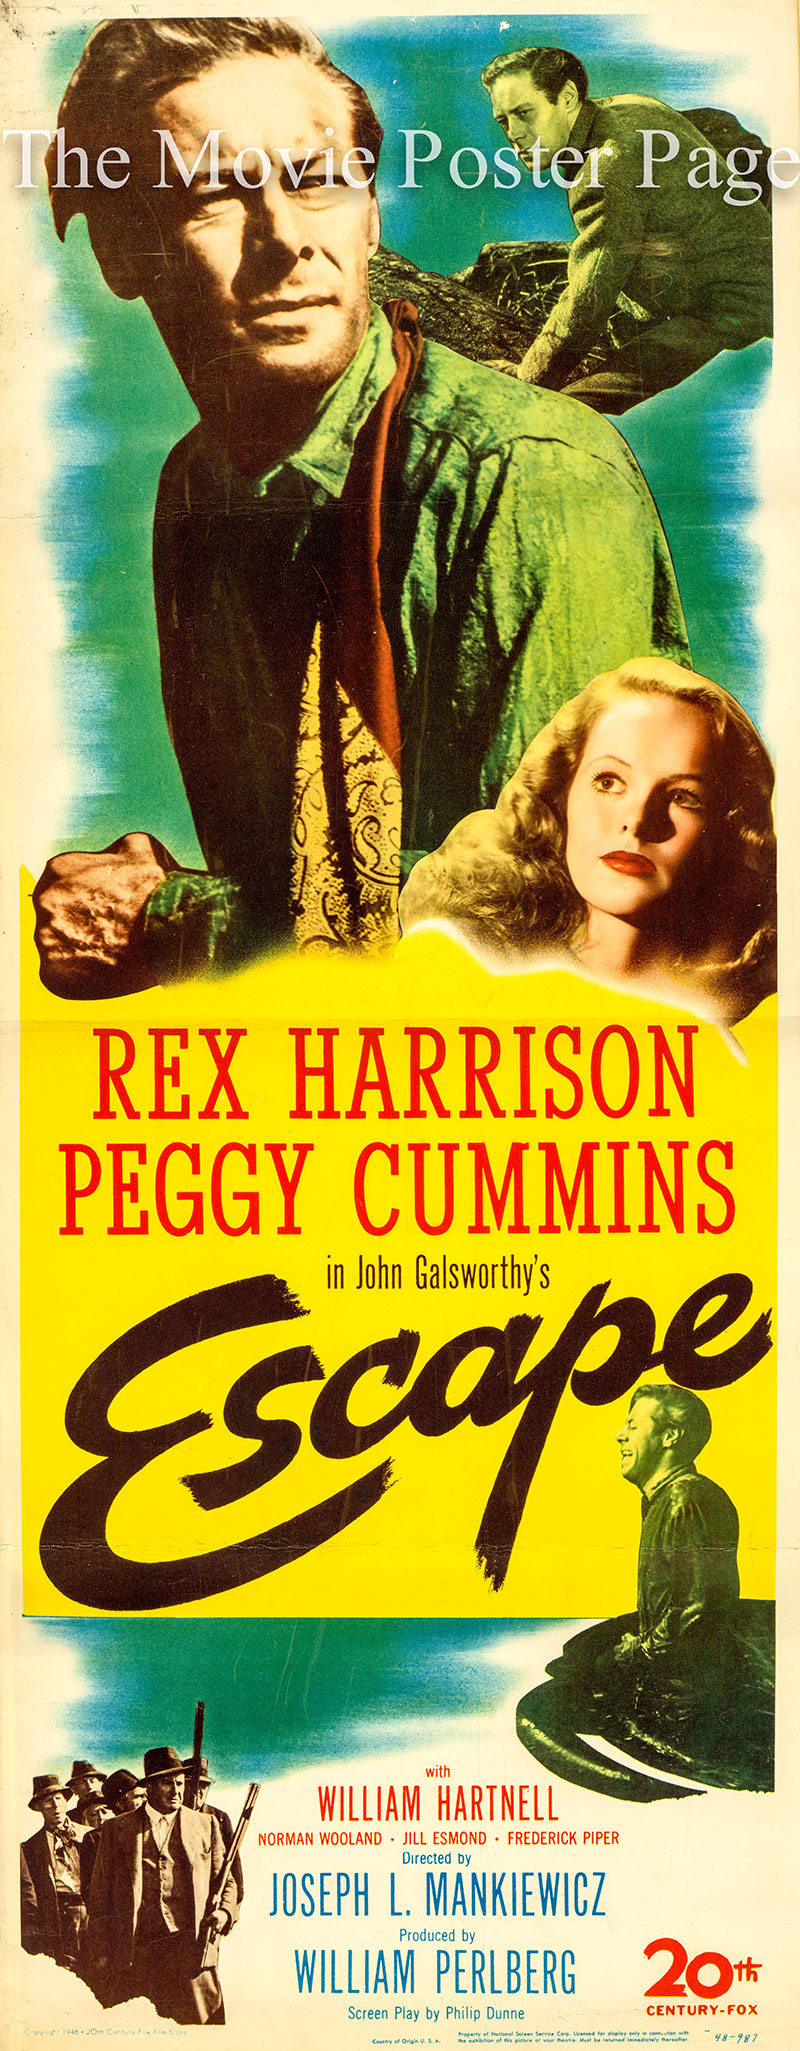 Pictured is the US insert promotional poster for the 1948 Joseph L. Mankiewicz film Escape, based on the play by John Galsworthy and starring Rex Harrison.